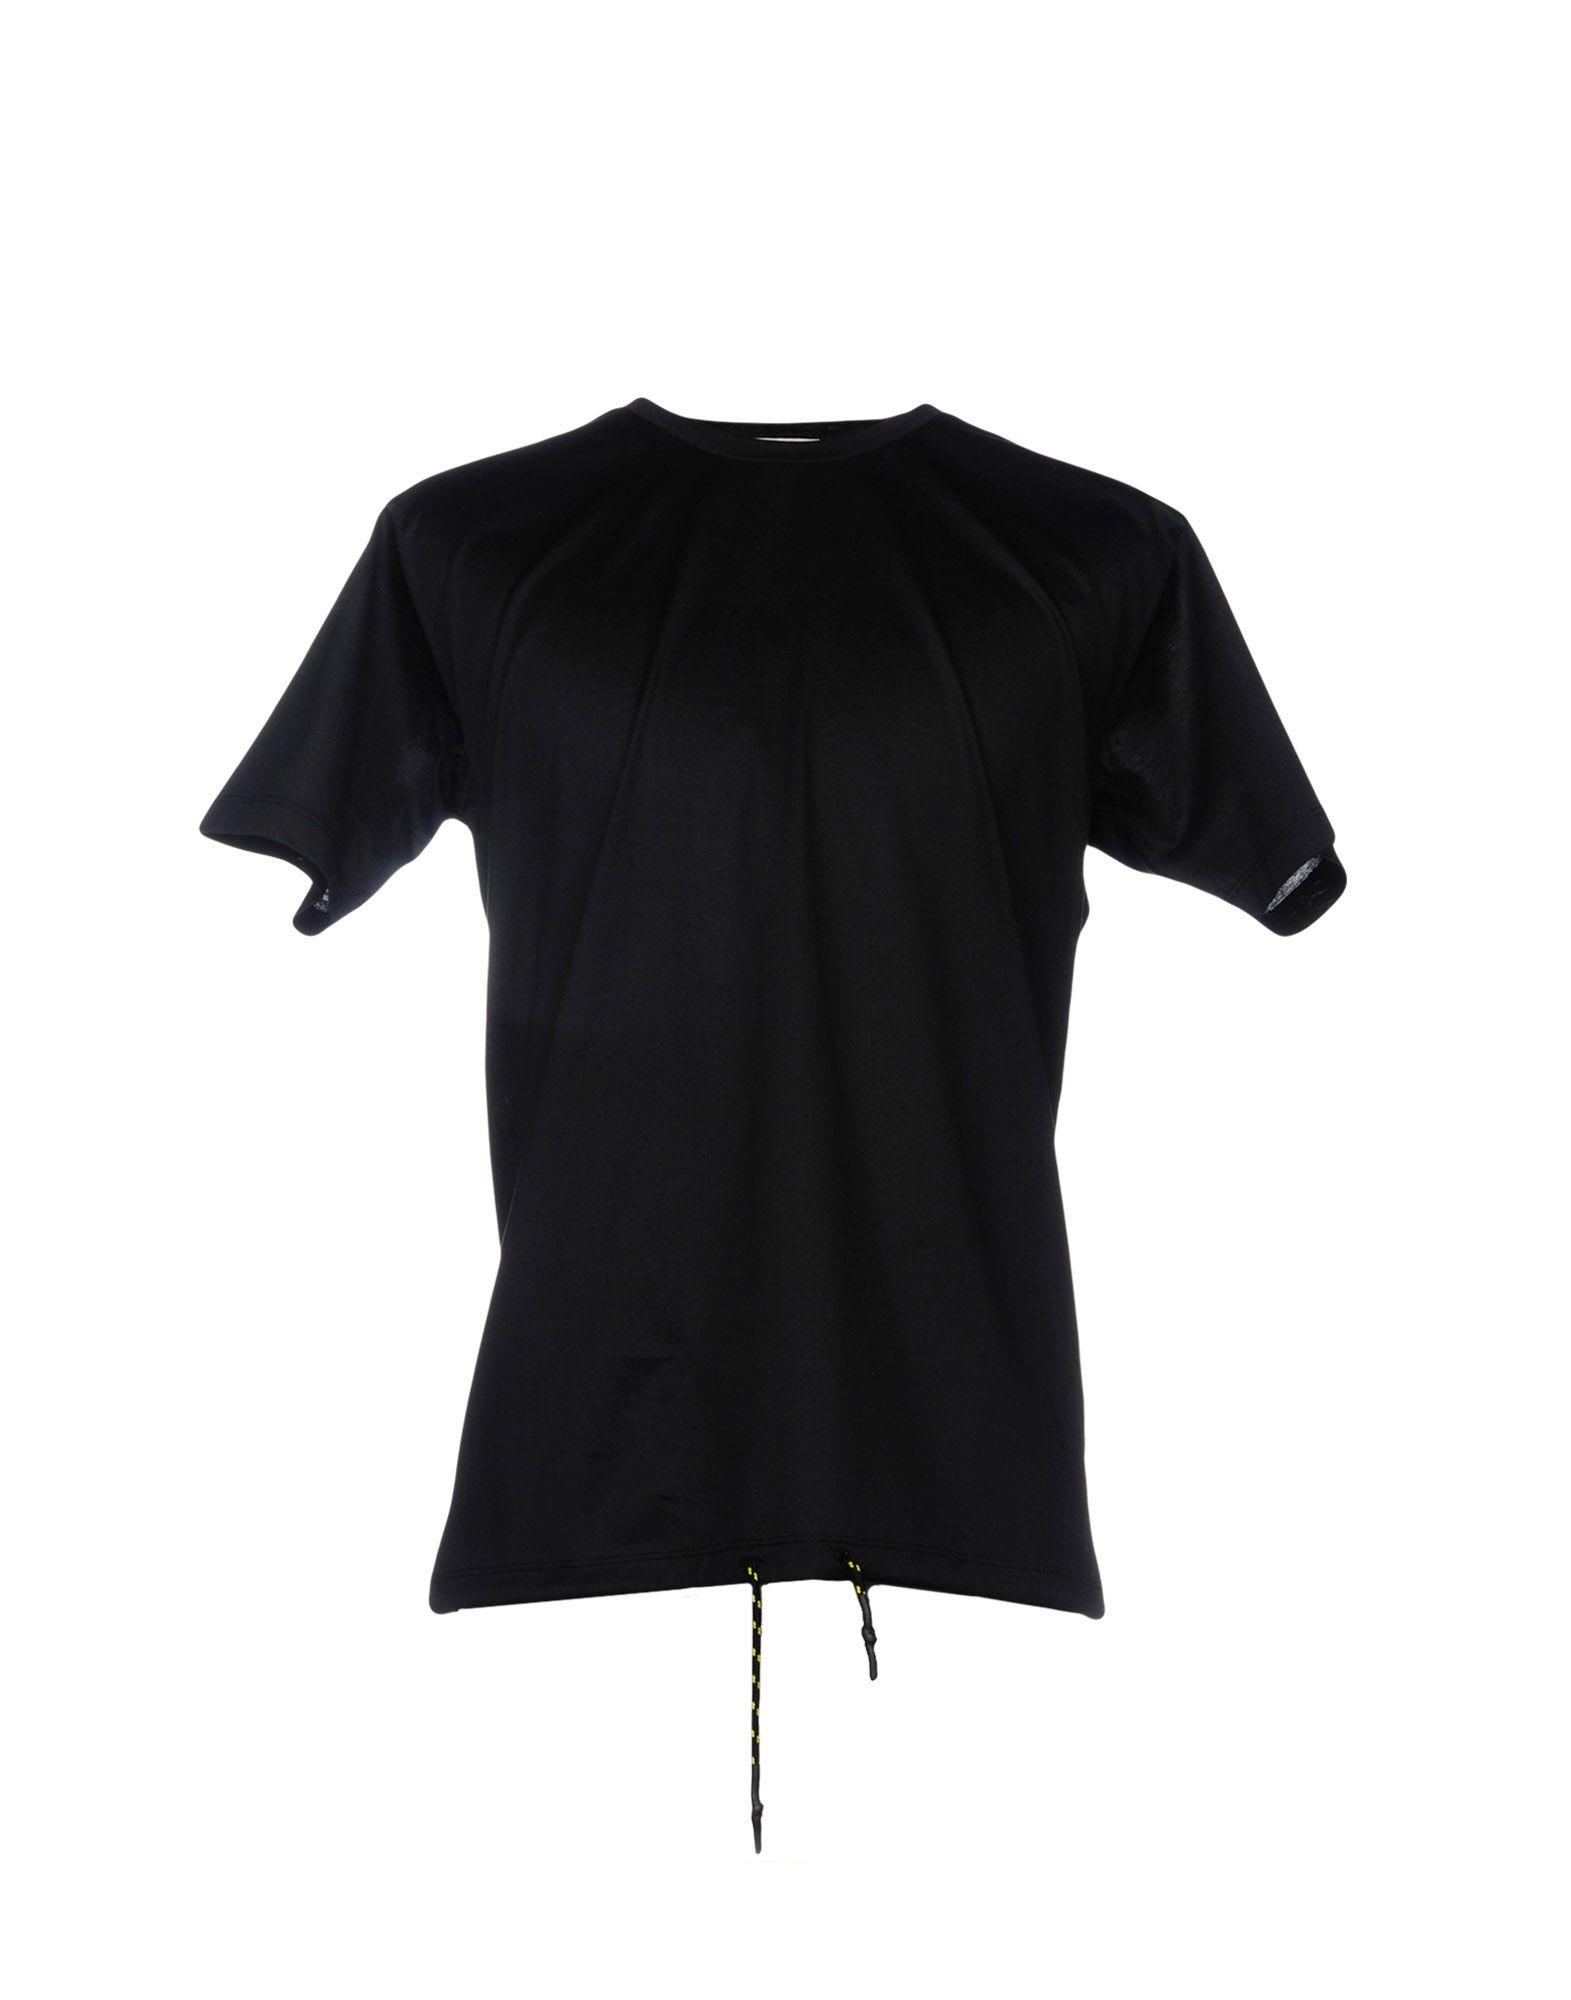 Low Brand T-shirt In Black